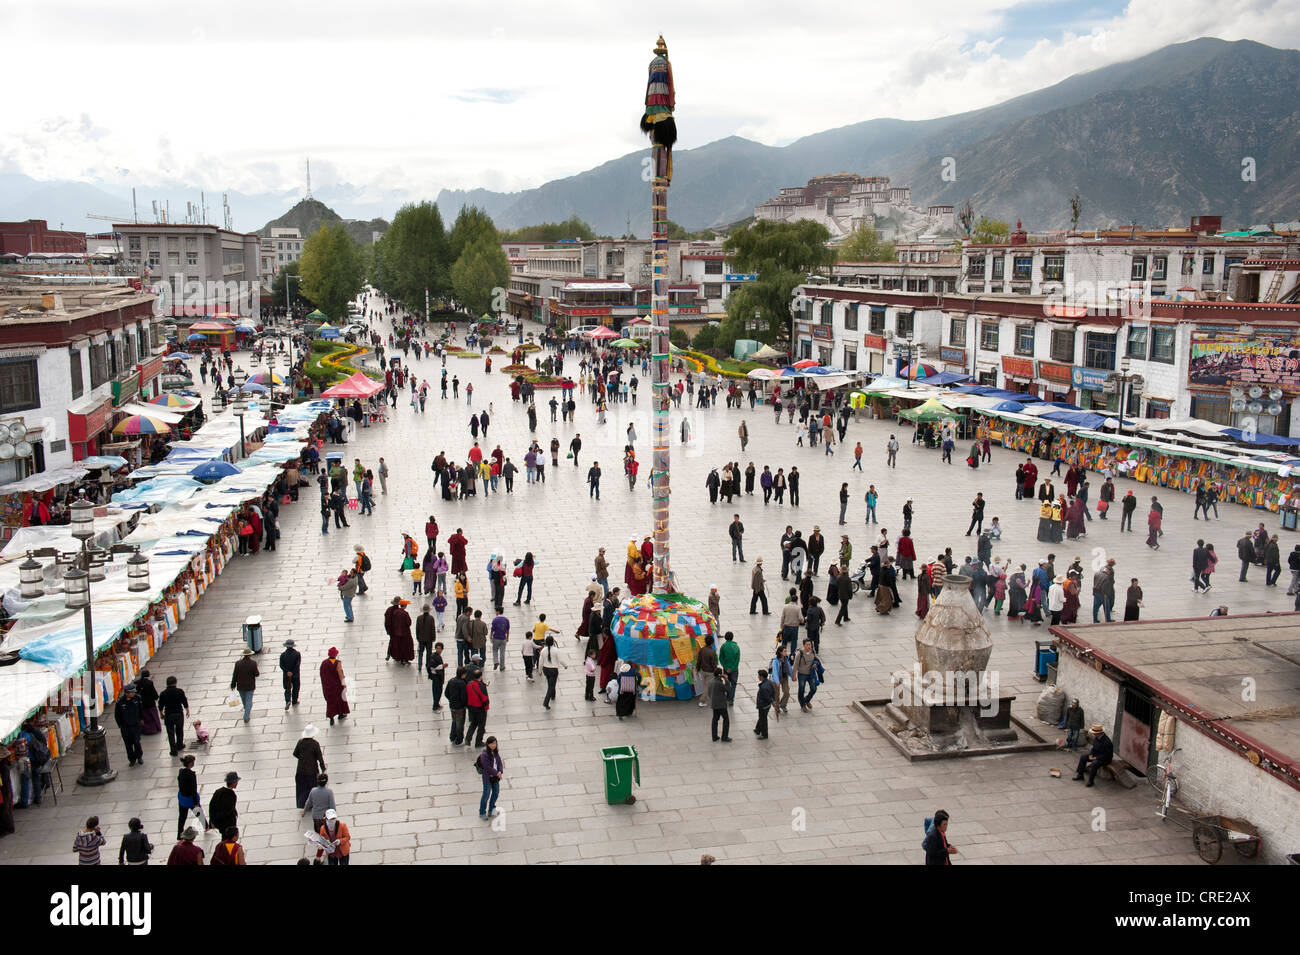 View from the Jokhang Temple in the Barkhor square, Lhasa, Himalayas, Tibet, China, Asia - Stock Image